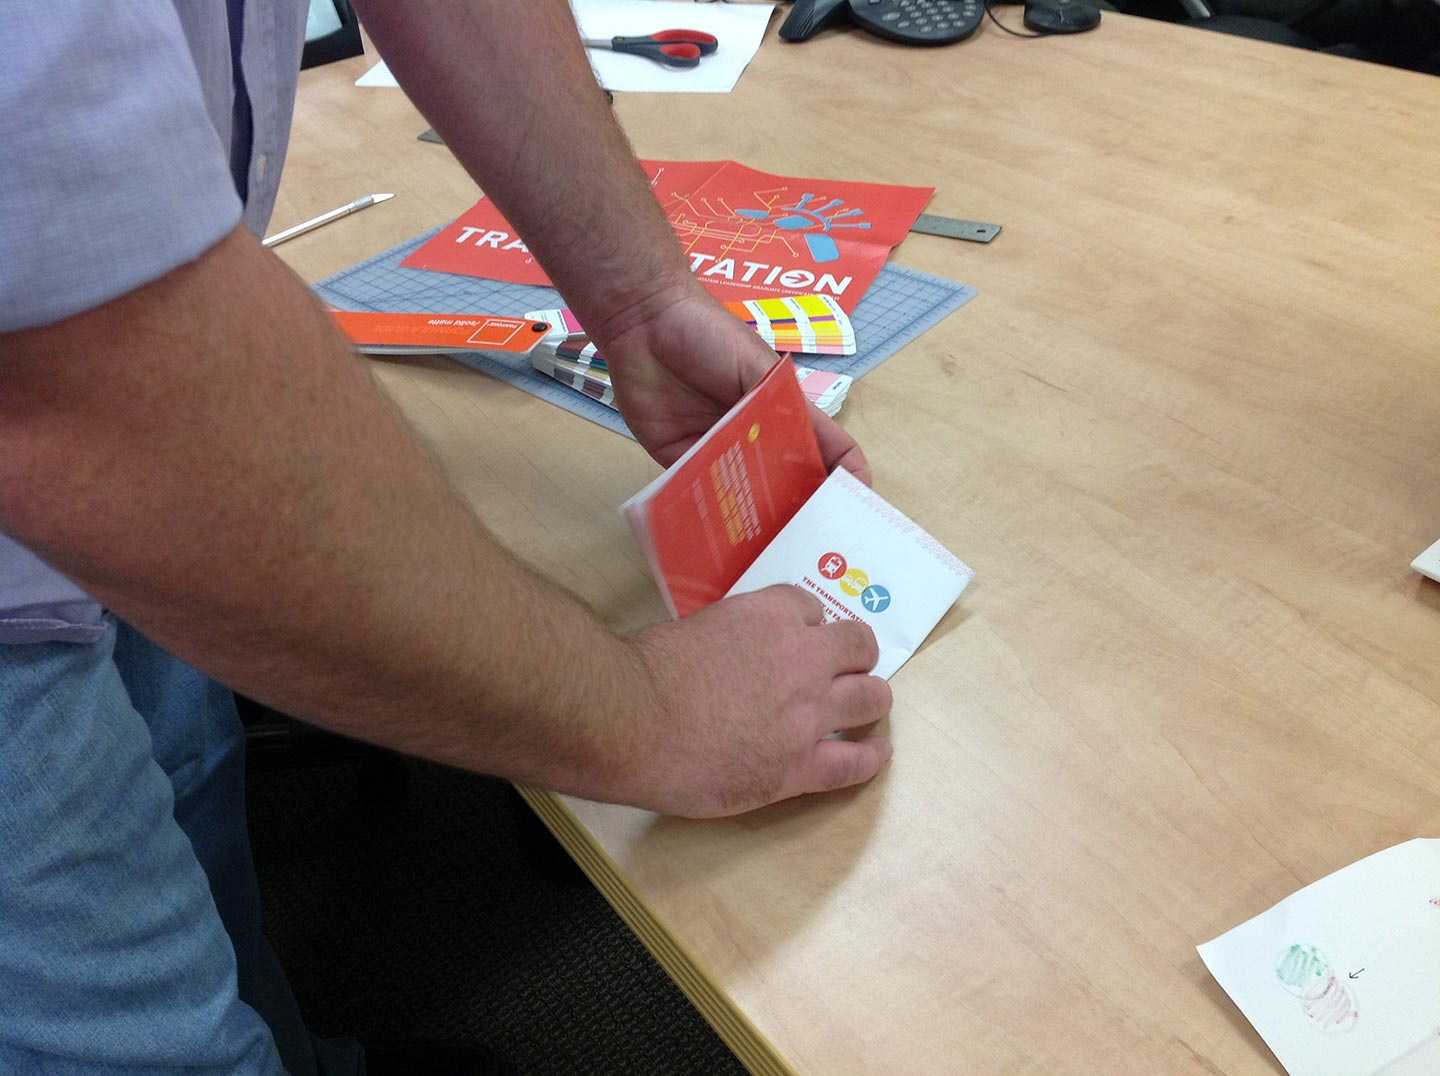 Two hands folding a transportation brochure atop a light wood table